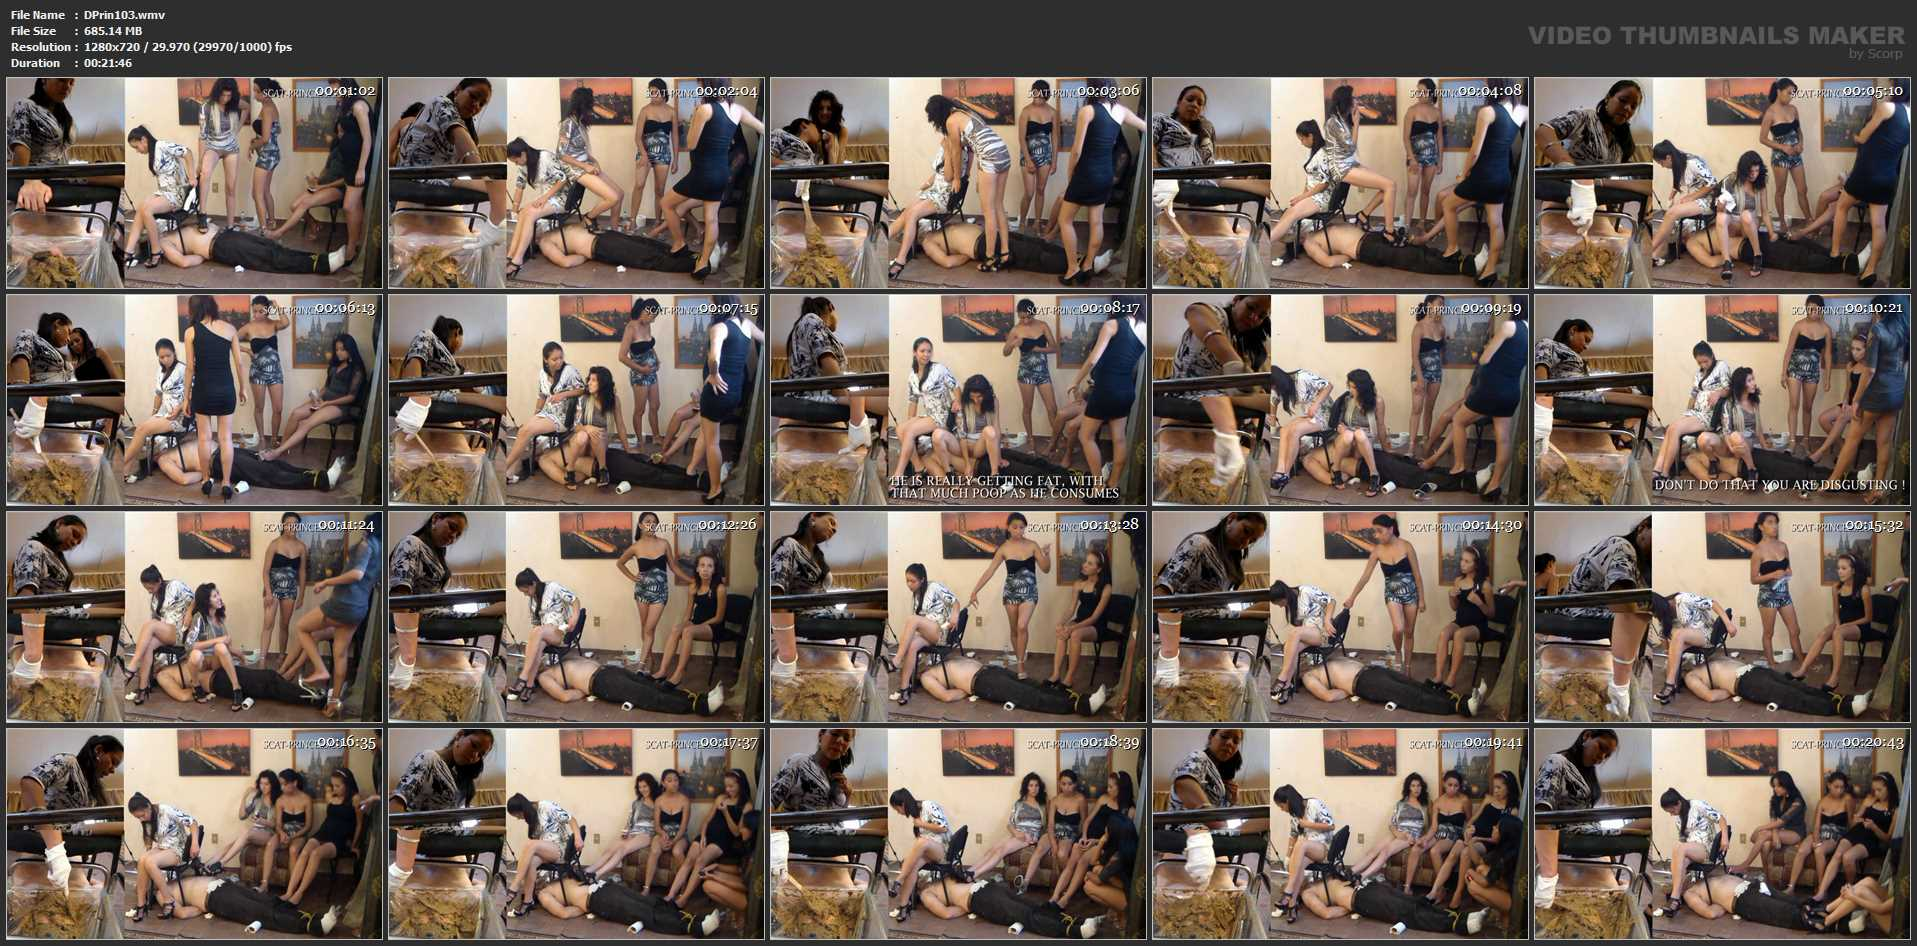 [DOM-PRINCESS] When Shit Piles up on his Face, this is what happens Part 7 The Feeding [HD][720p][WMV]